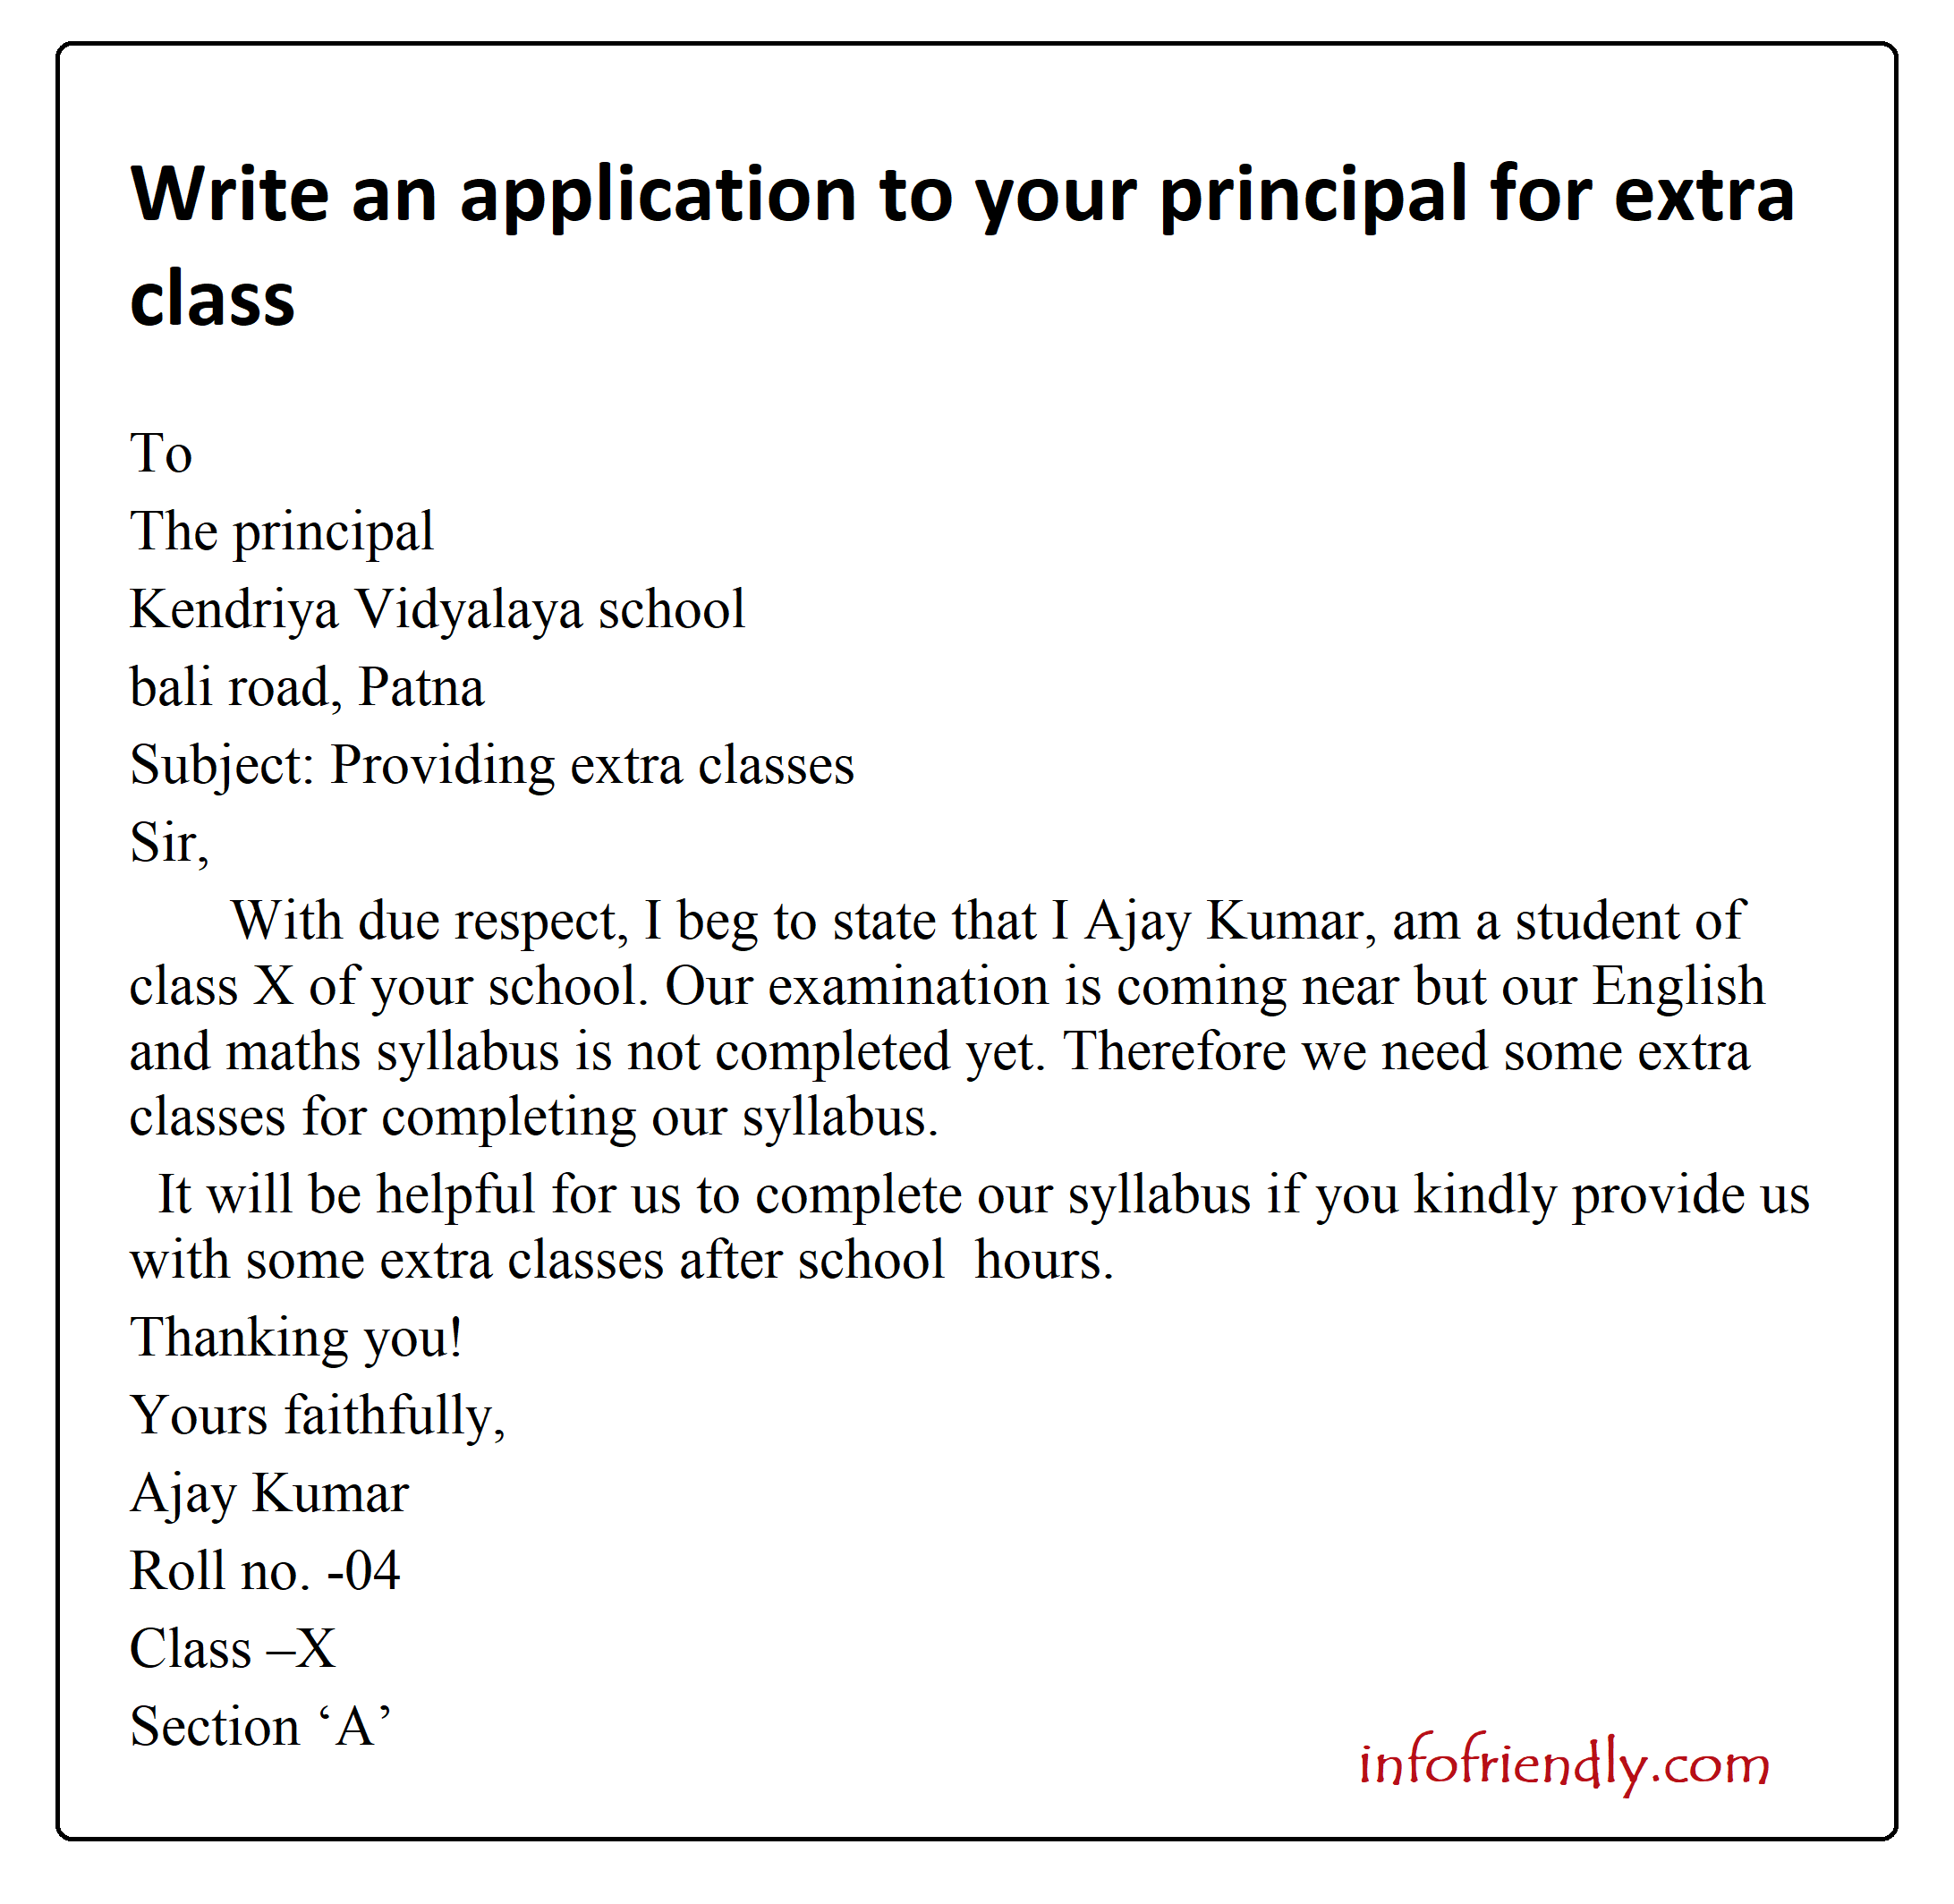 How to write an application essay in english